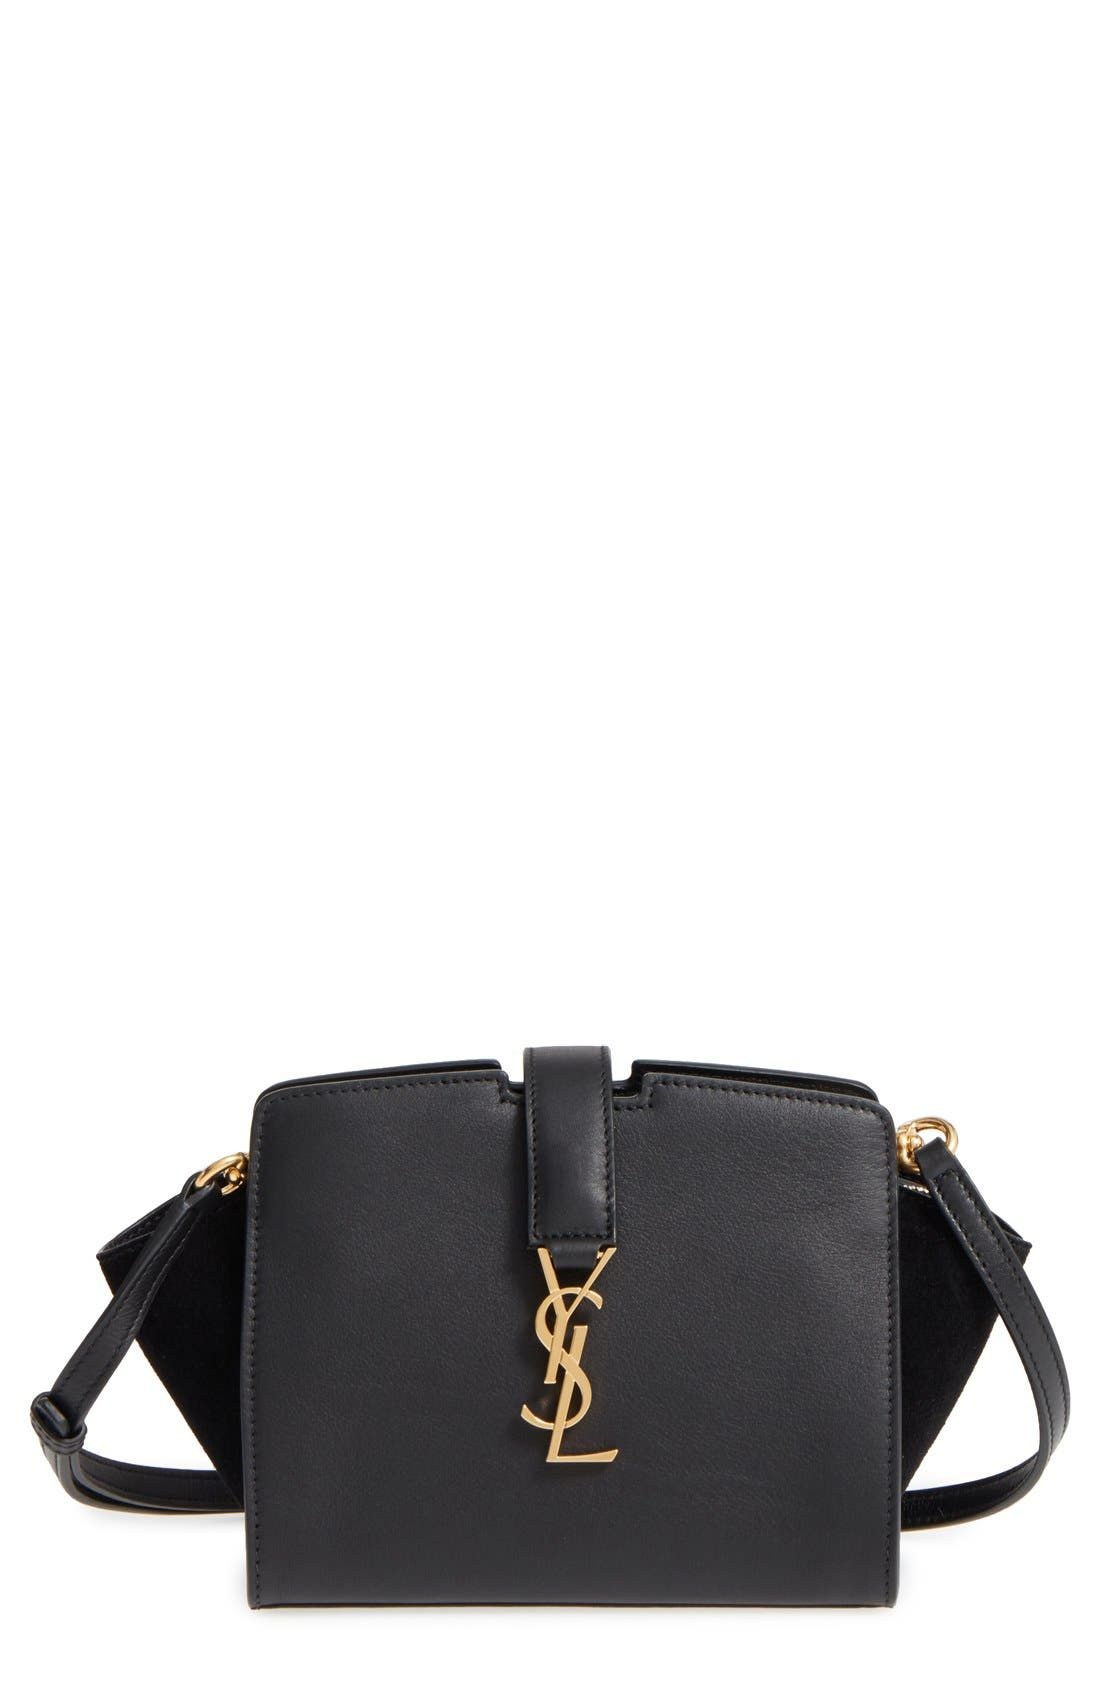 Alternate Image 1 Selected - Saint Laurent Toy Cabas Leather Crossbody Bag